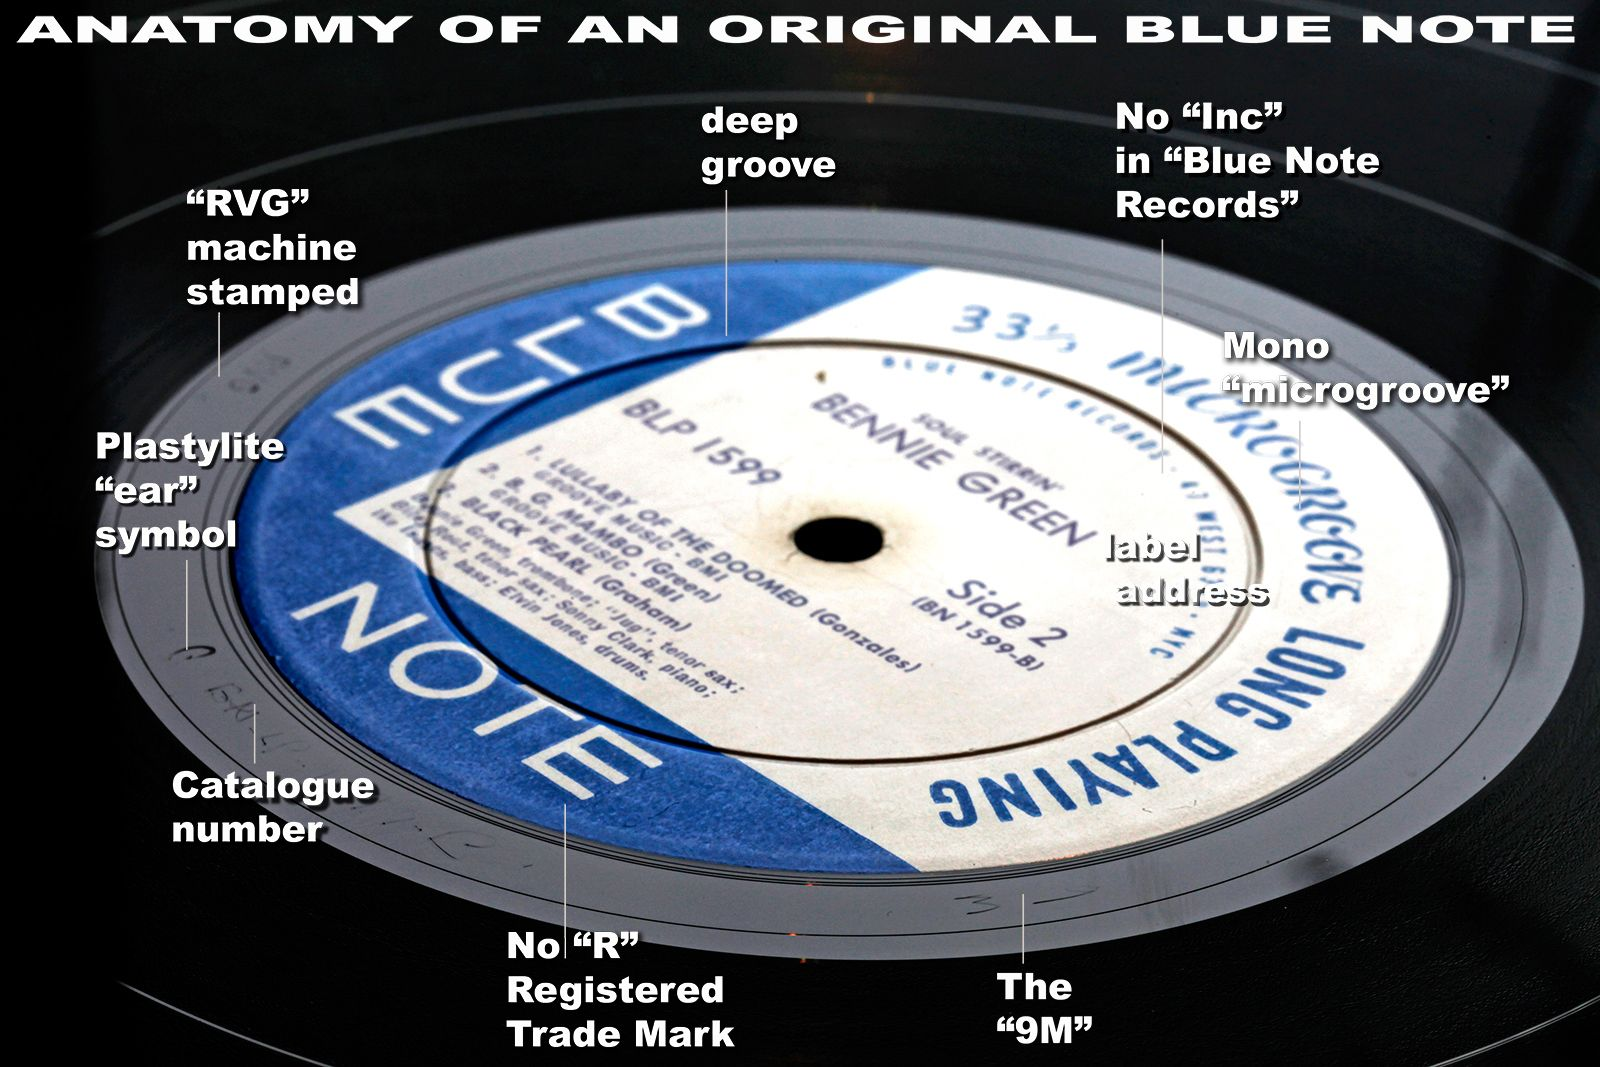 Blue Note Records Complete Guide To The Blue Note Labels Vinyl Records Music Vinyl Records New Vinyl Records